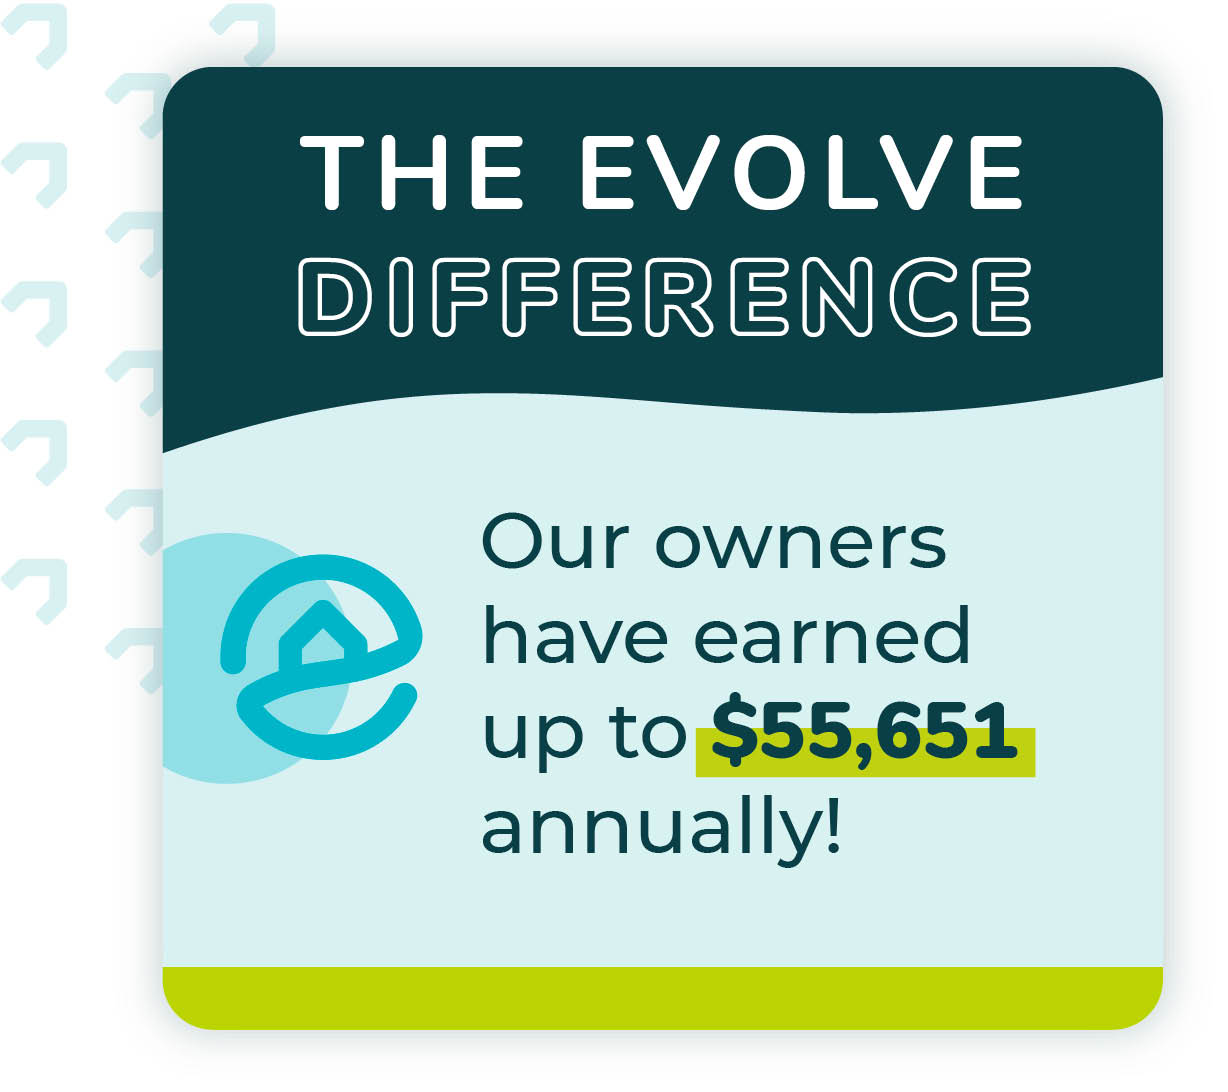 Ocean City, Maryland Evolve Difference Graphic